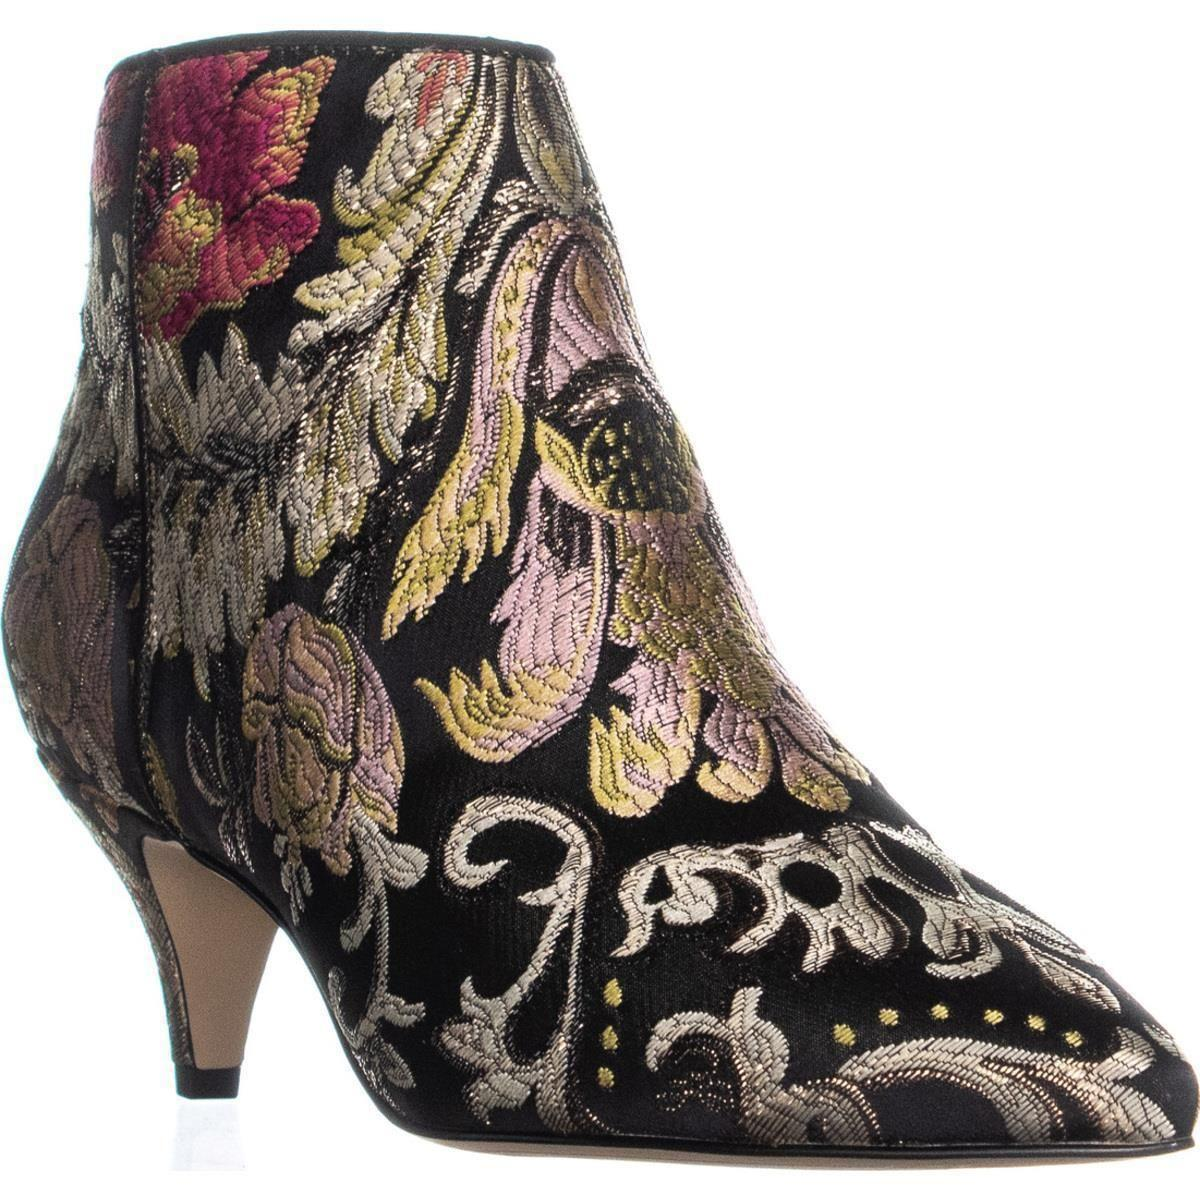 a6faad75e395 Lyst - Sam Edelman Kinzey Ankle Boots in Black - Save 13%